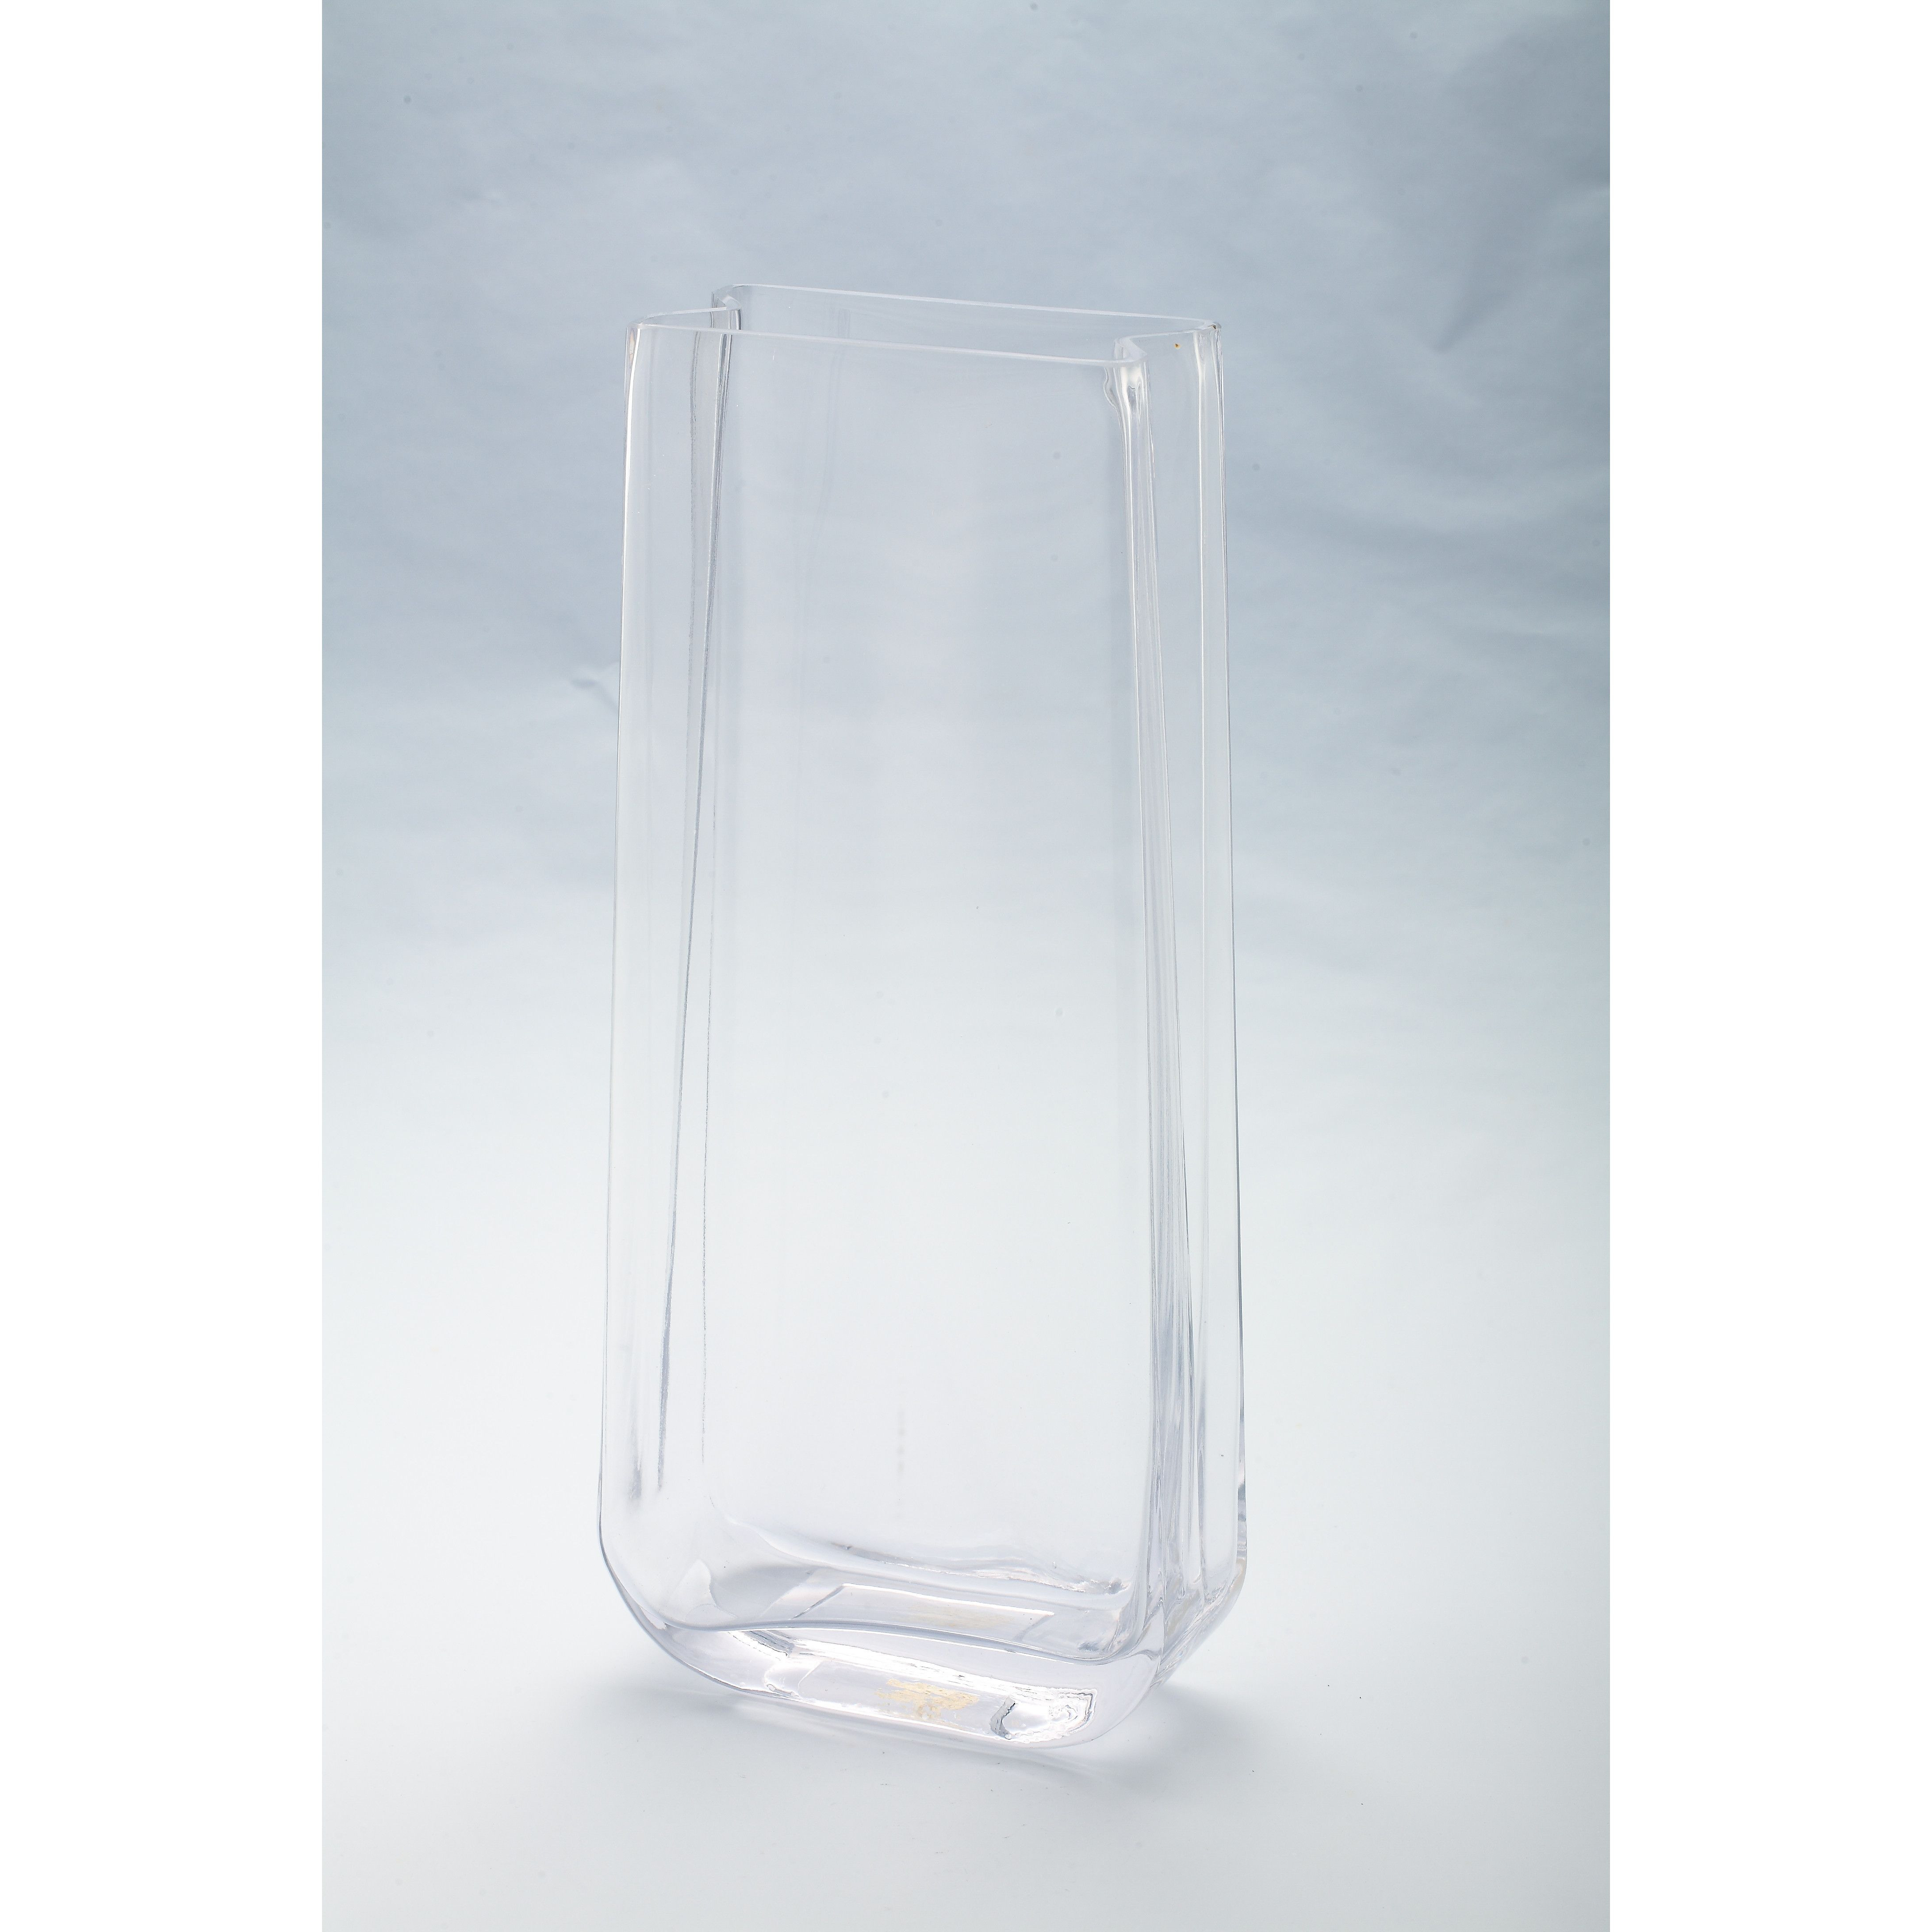 Skinny Vase Centerpiece Of Diamond Star Glass Vase Wedding Rental Ideas Pinterest Wedding with Vase Diamond Star Glass Vase